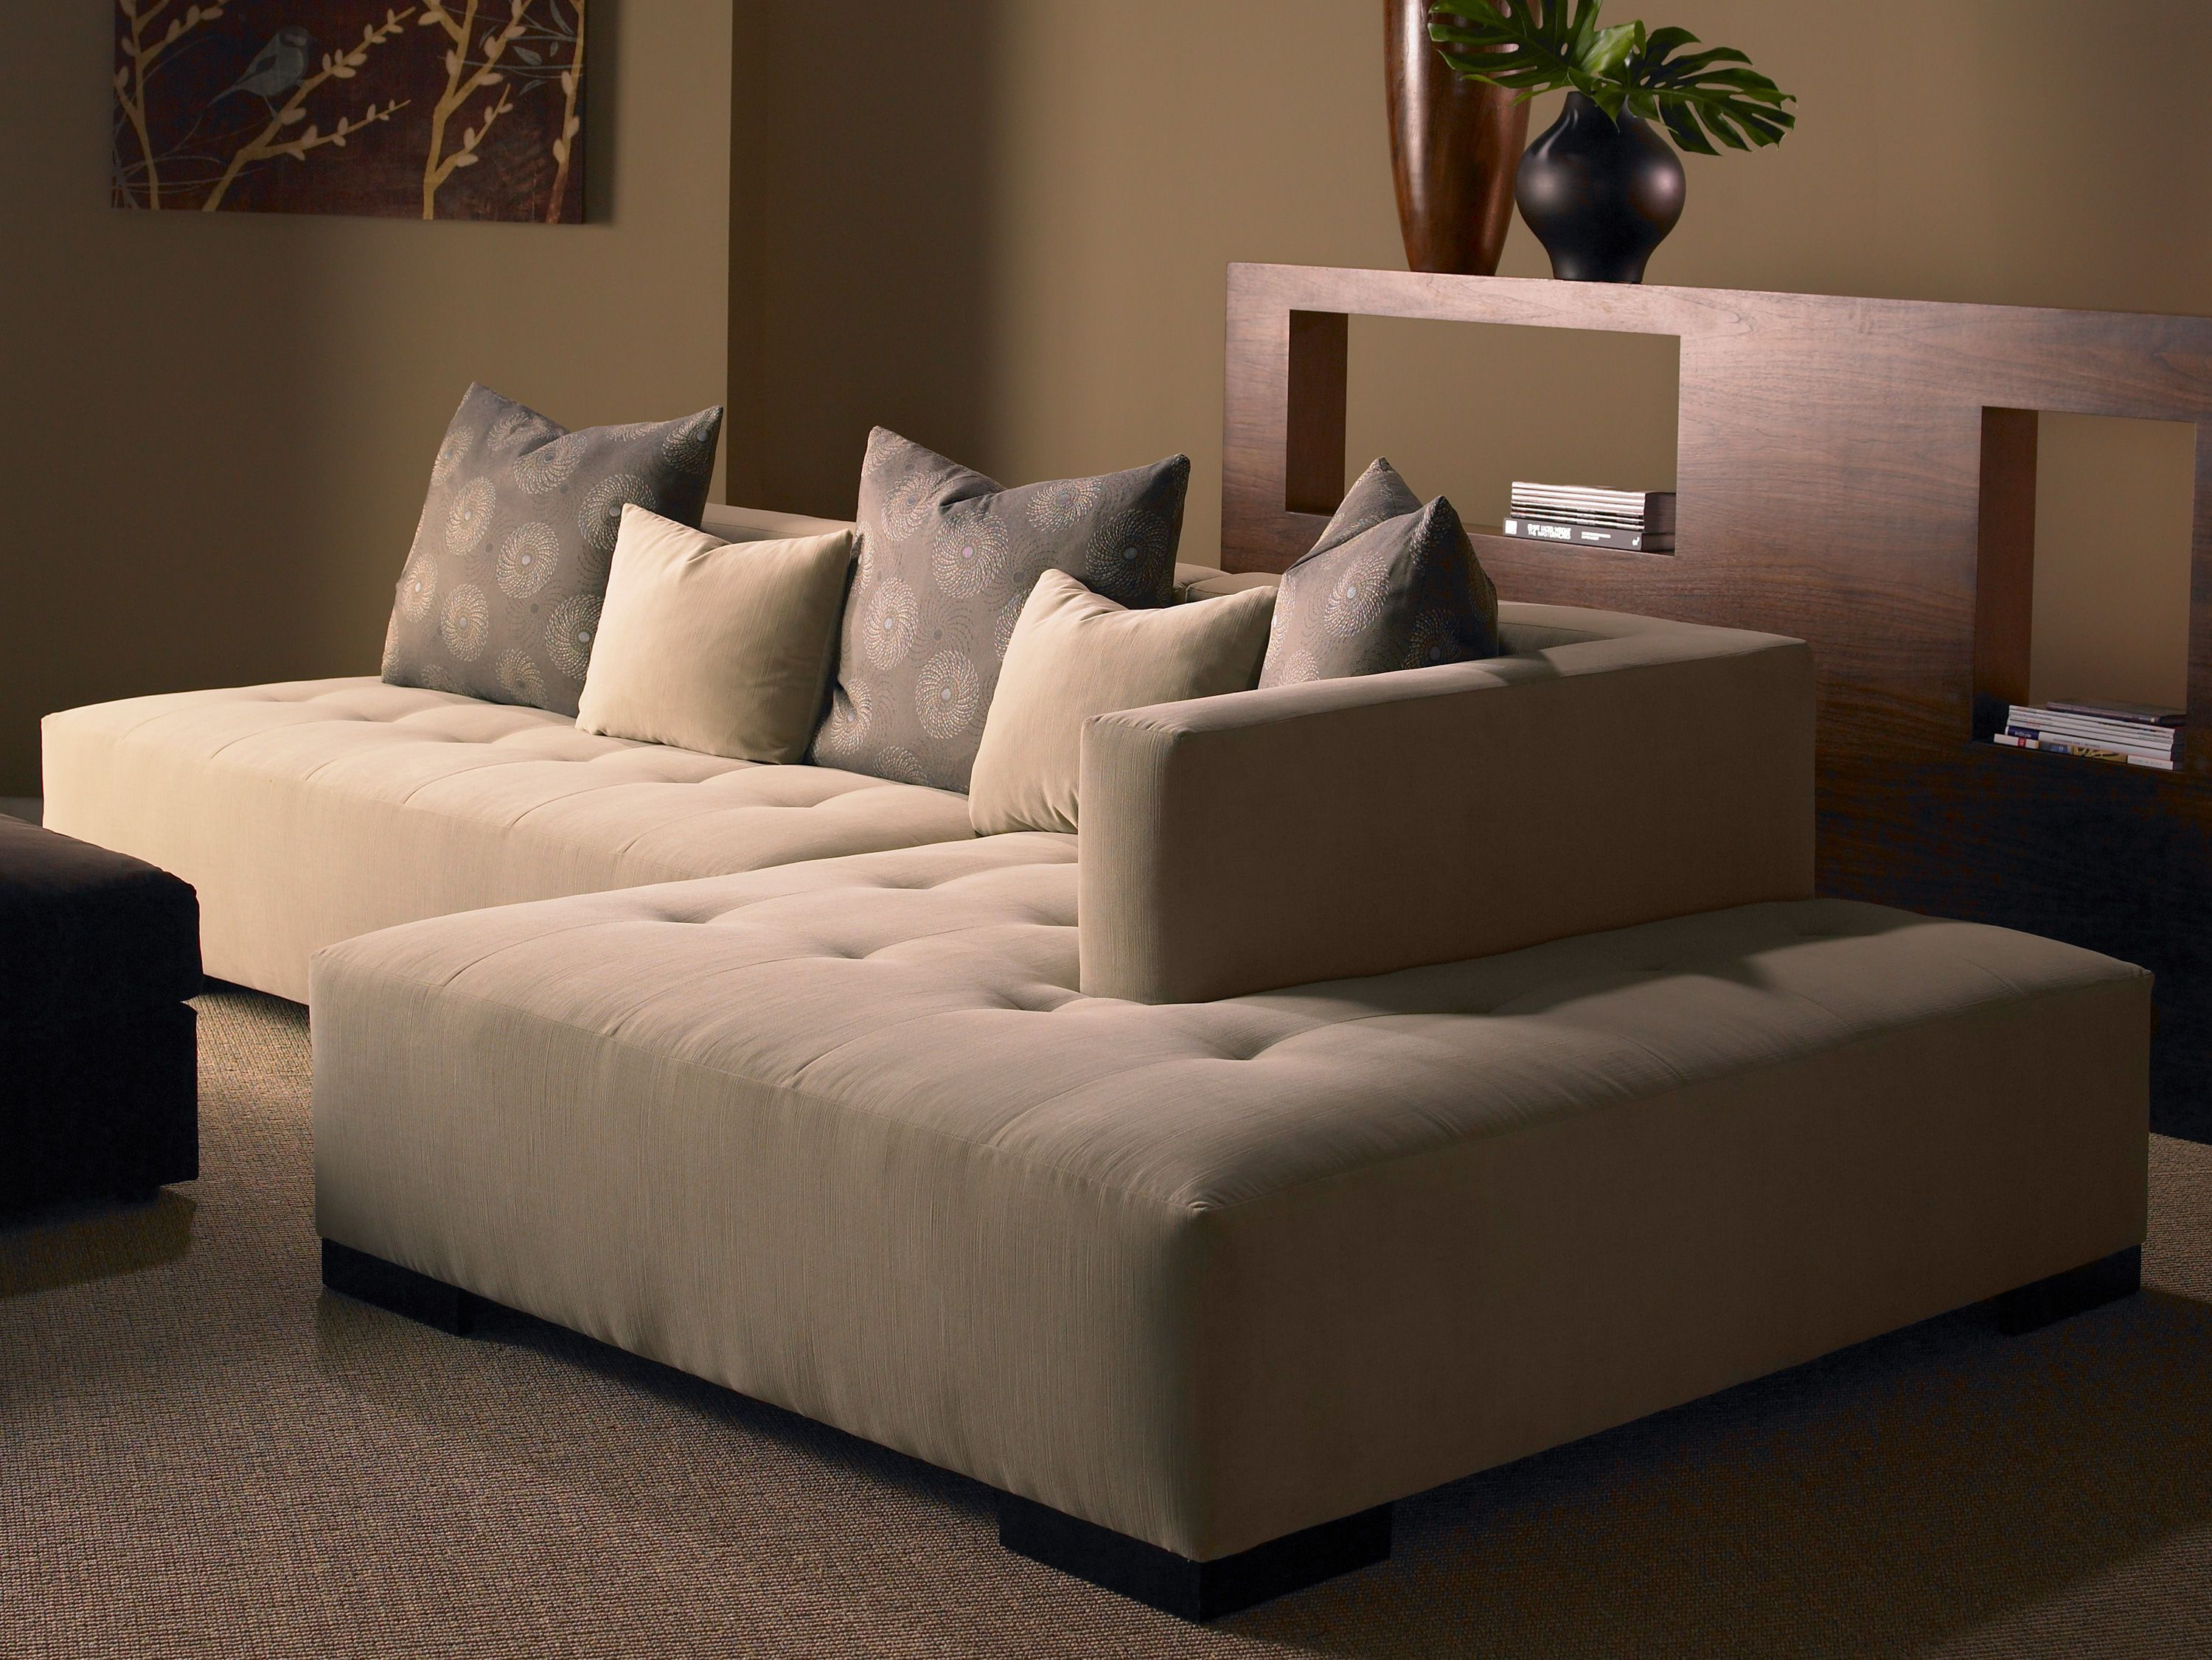 Tremendous American Leather Living Room Corbin Sectional Gallatin Caraccident5 Cool Chair Designs And Ideas Caraccident5Info